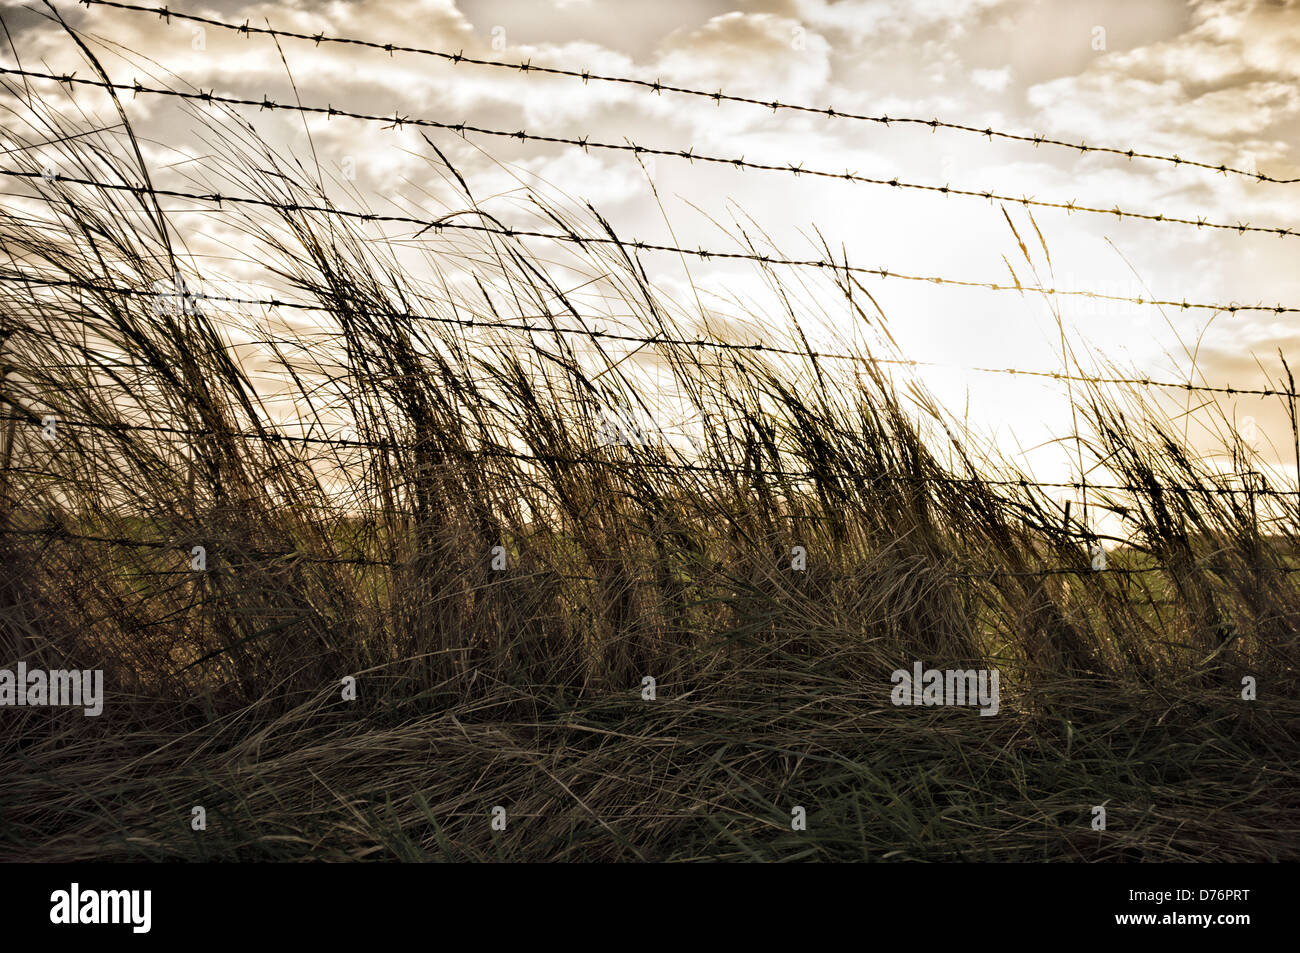 Grass and Barbed Wire Fence in front of a dramatic stormy sky. Picture by Julie Edwards - Stock Image